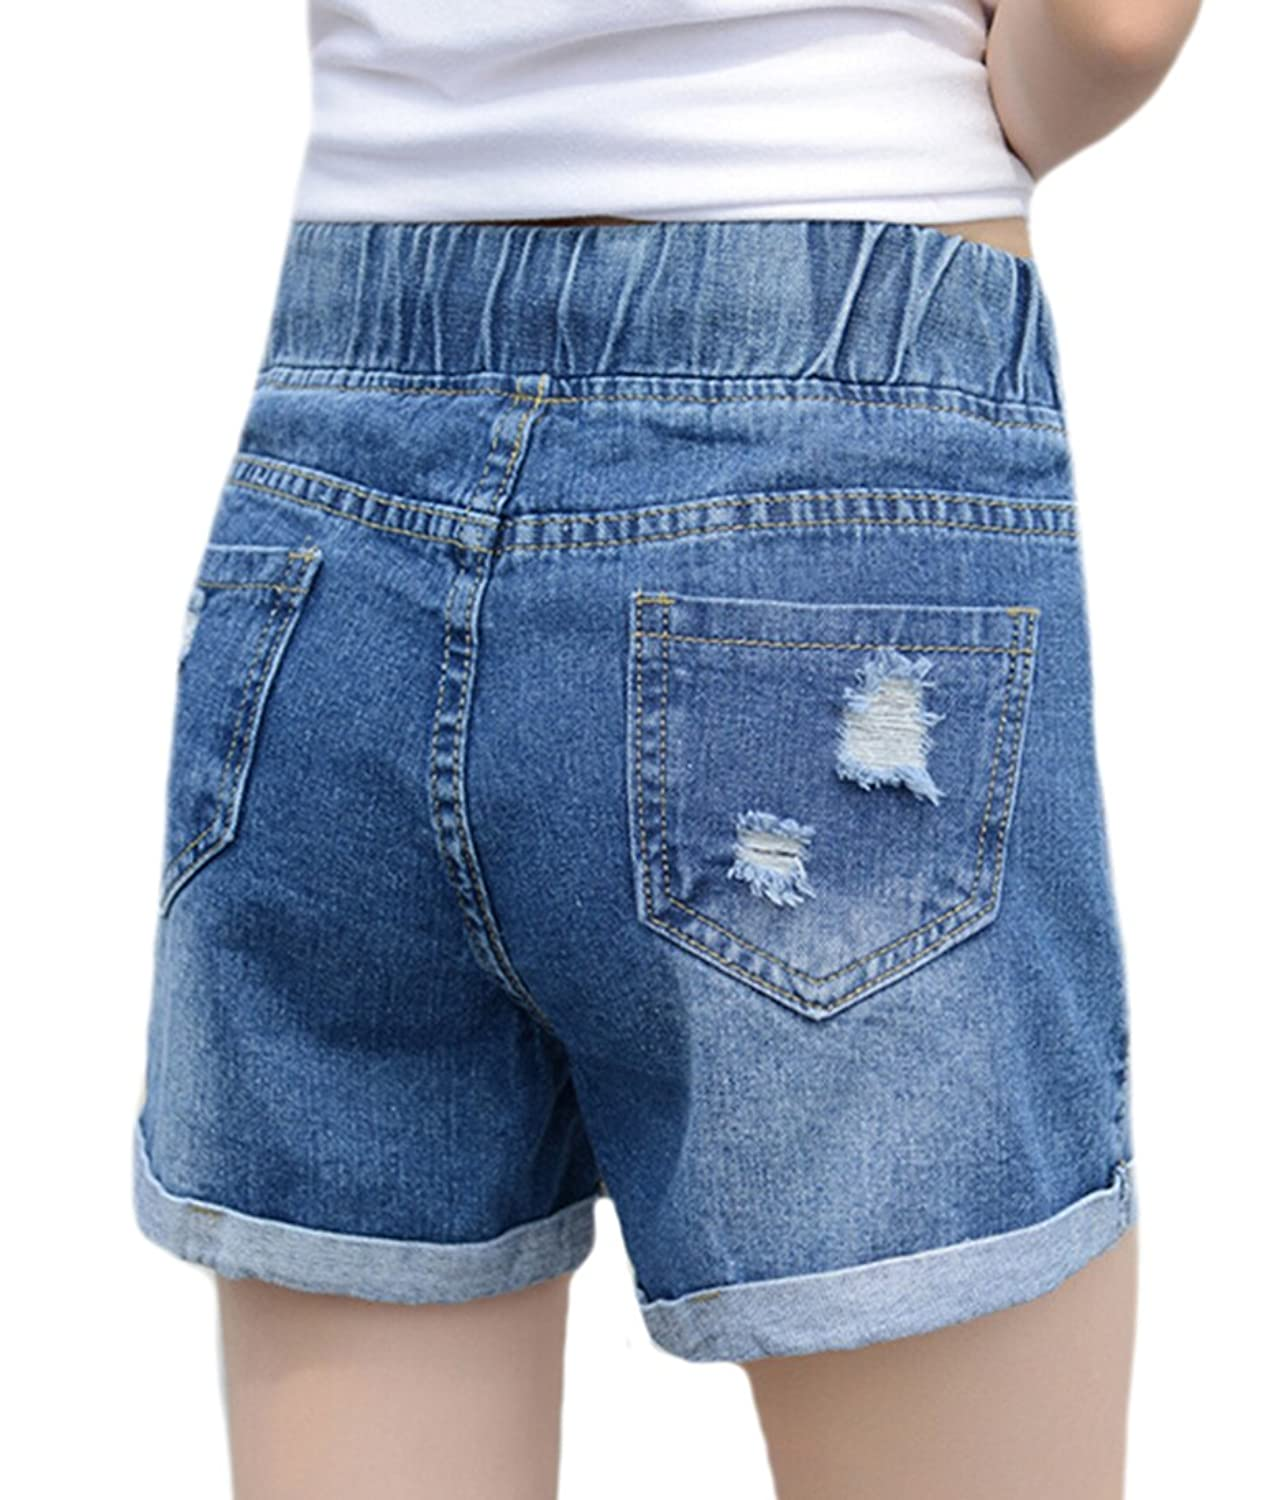 MLG Womens Casual Ripped Crimping Pockets Holter Jeans Shorts